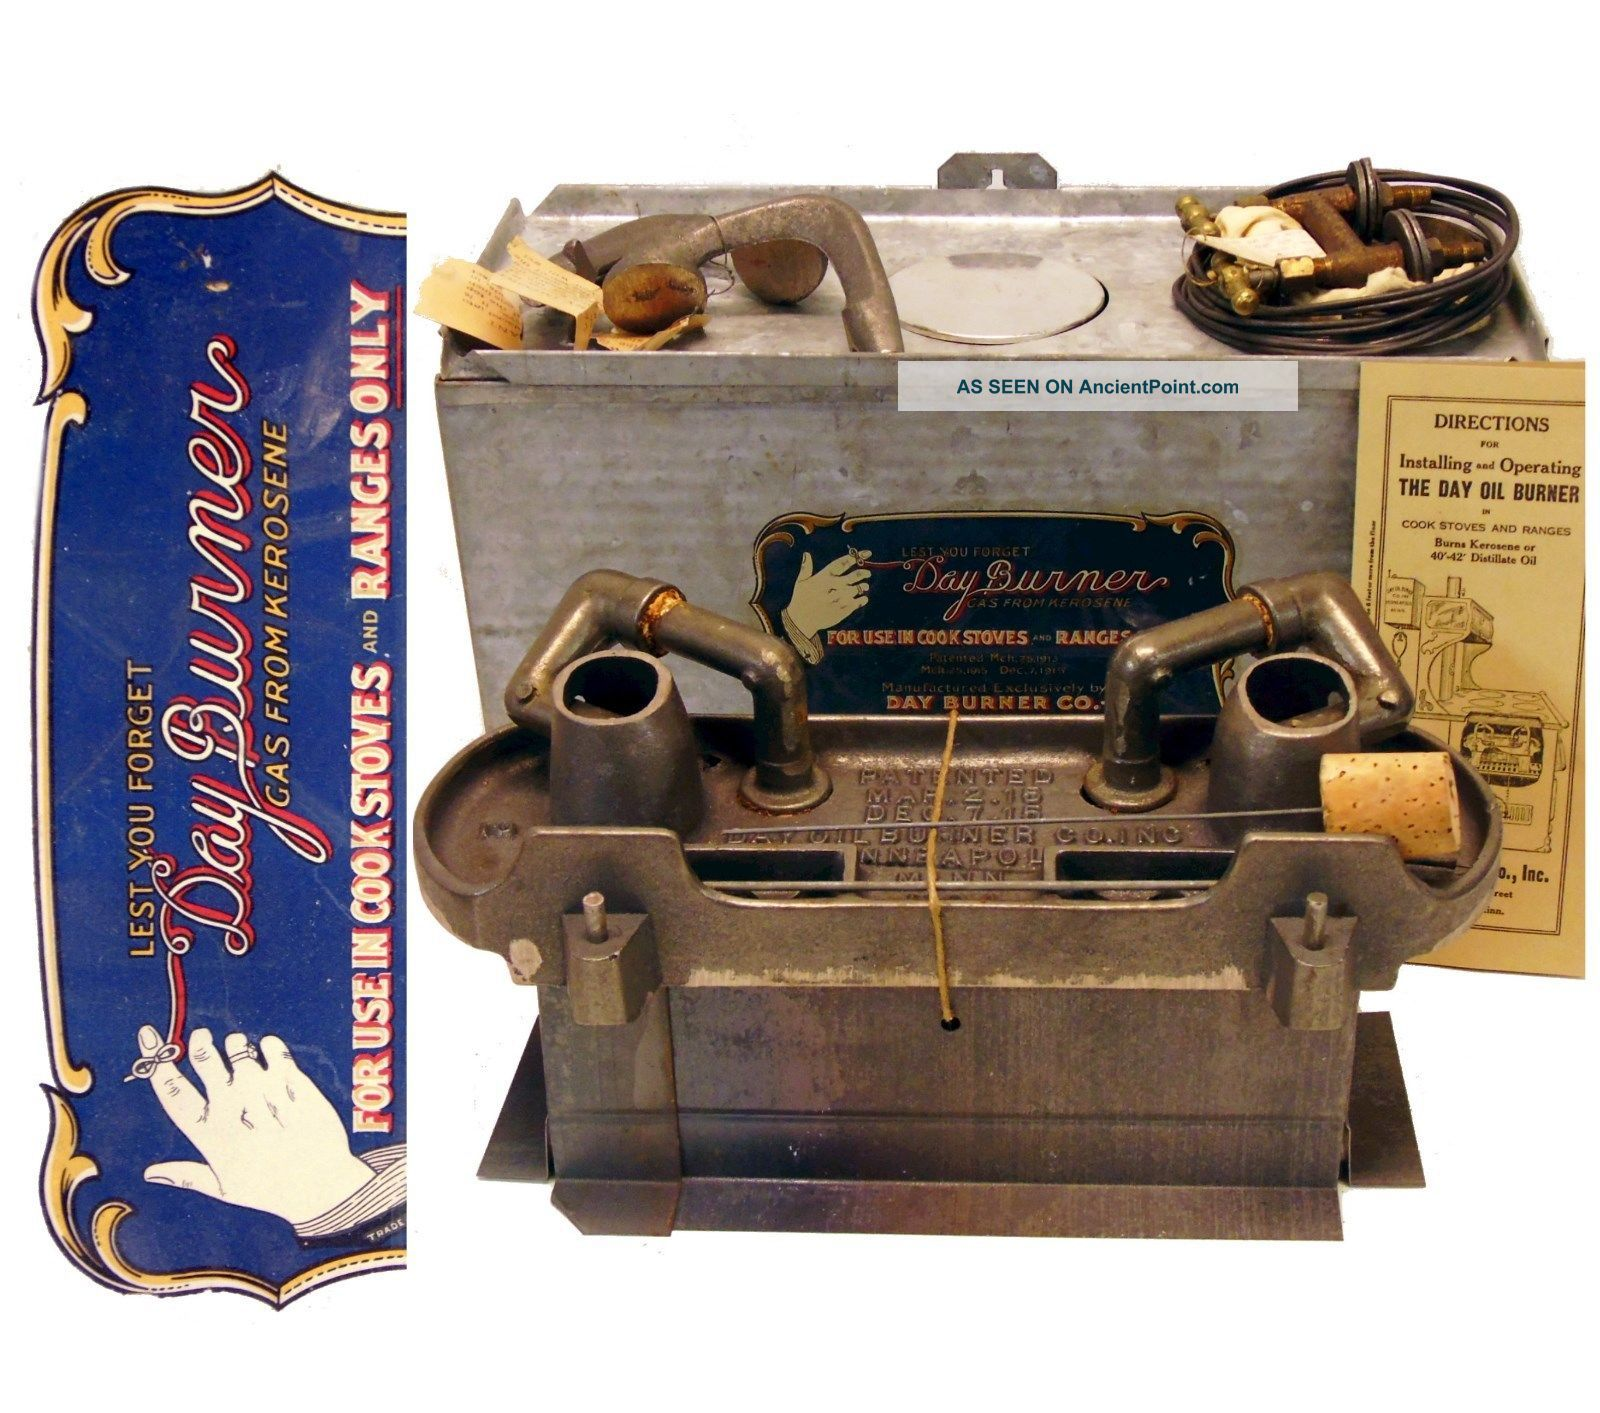 Antique Day Oil Burner Kerosene Conversion Kit For Wood Burning Cook Stove Range Stoves photo